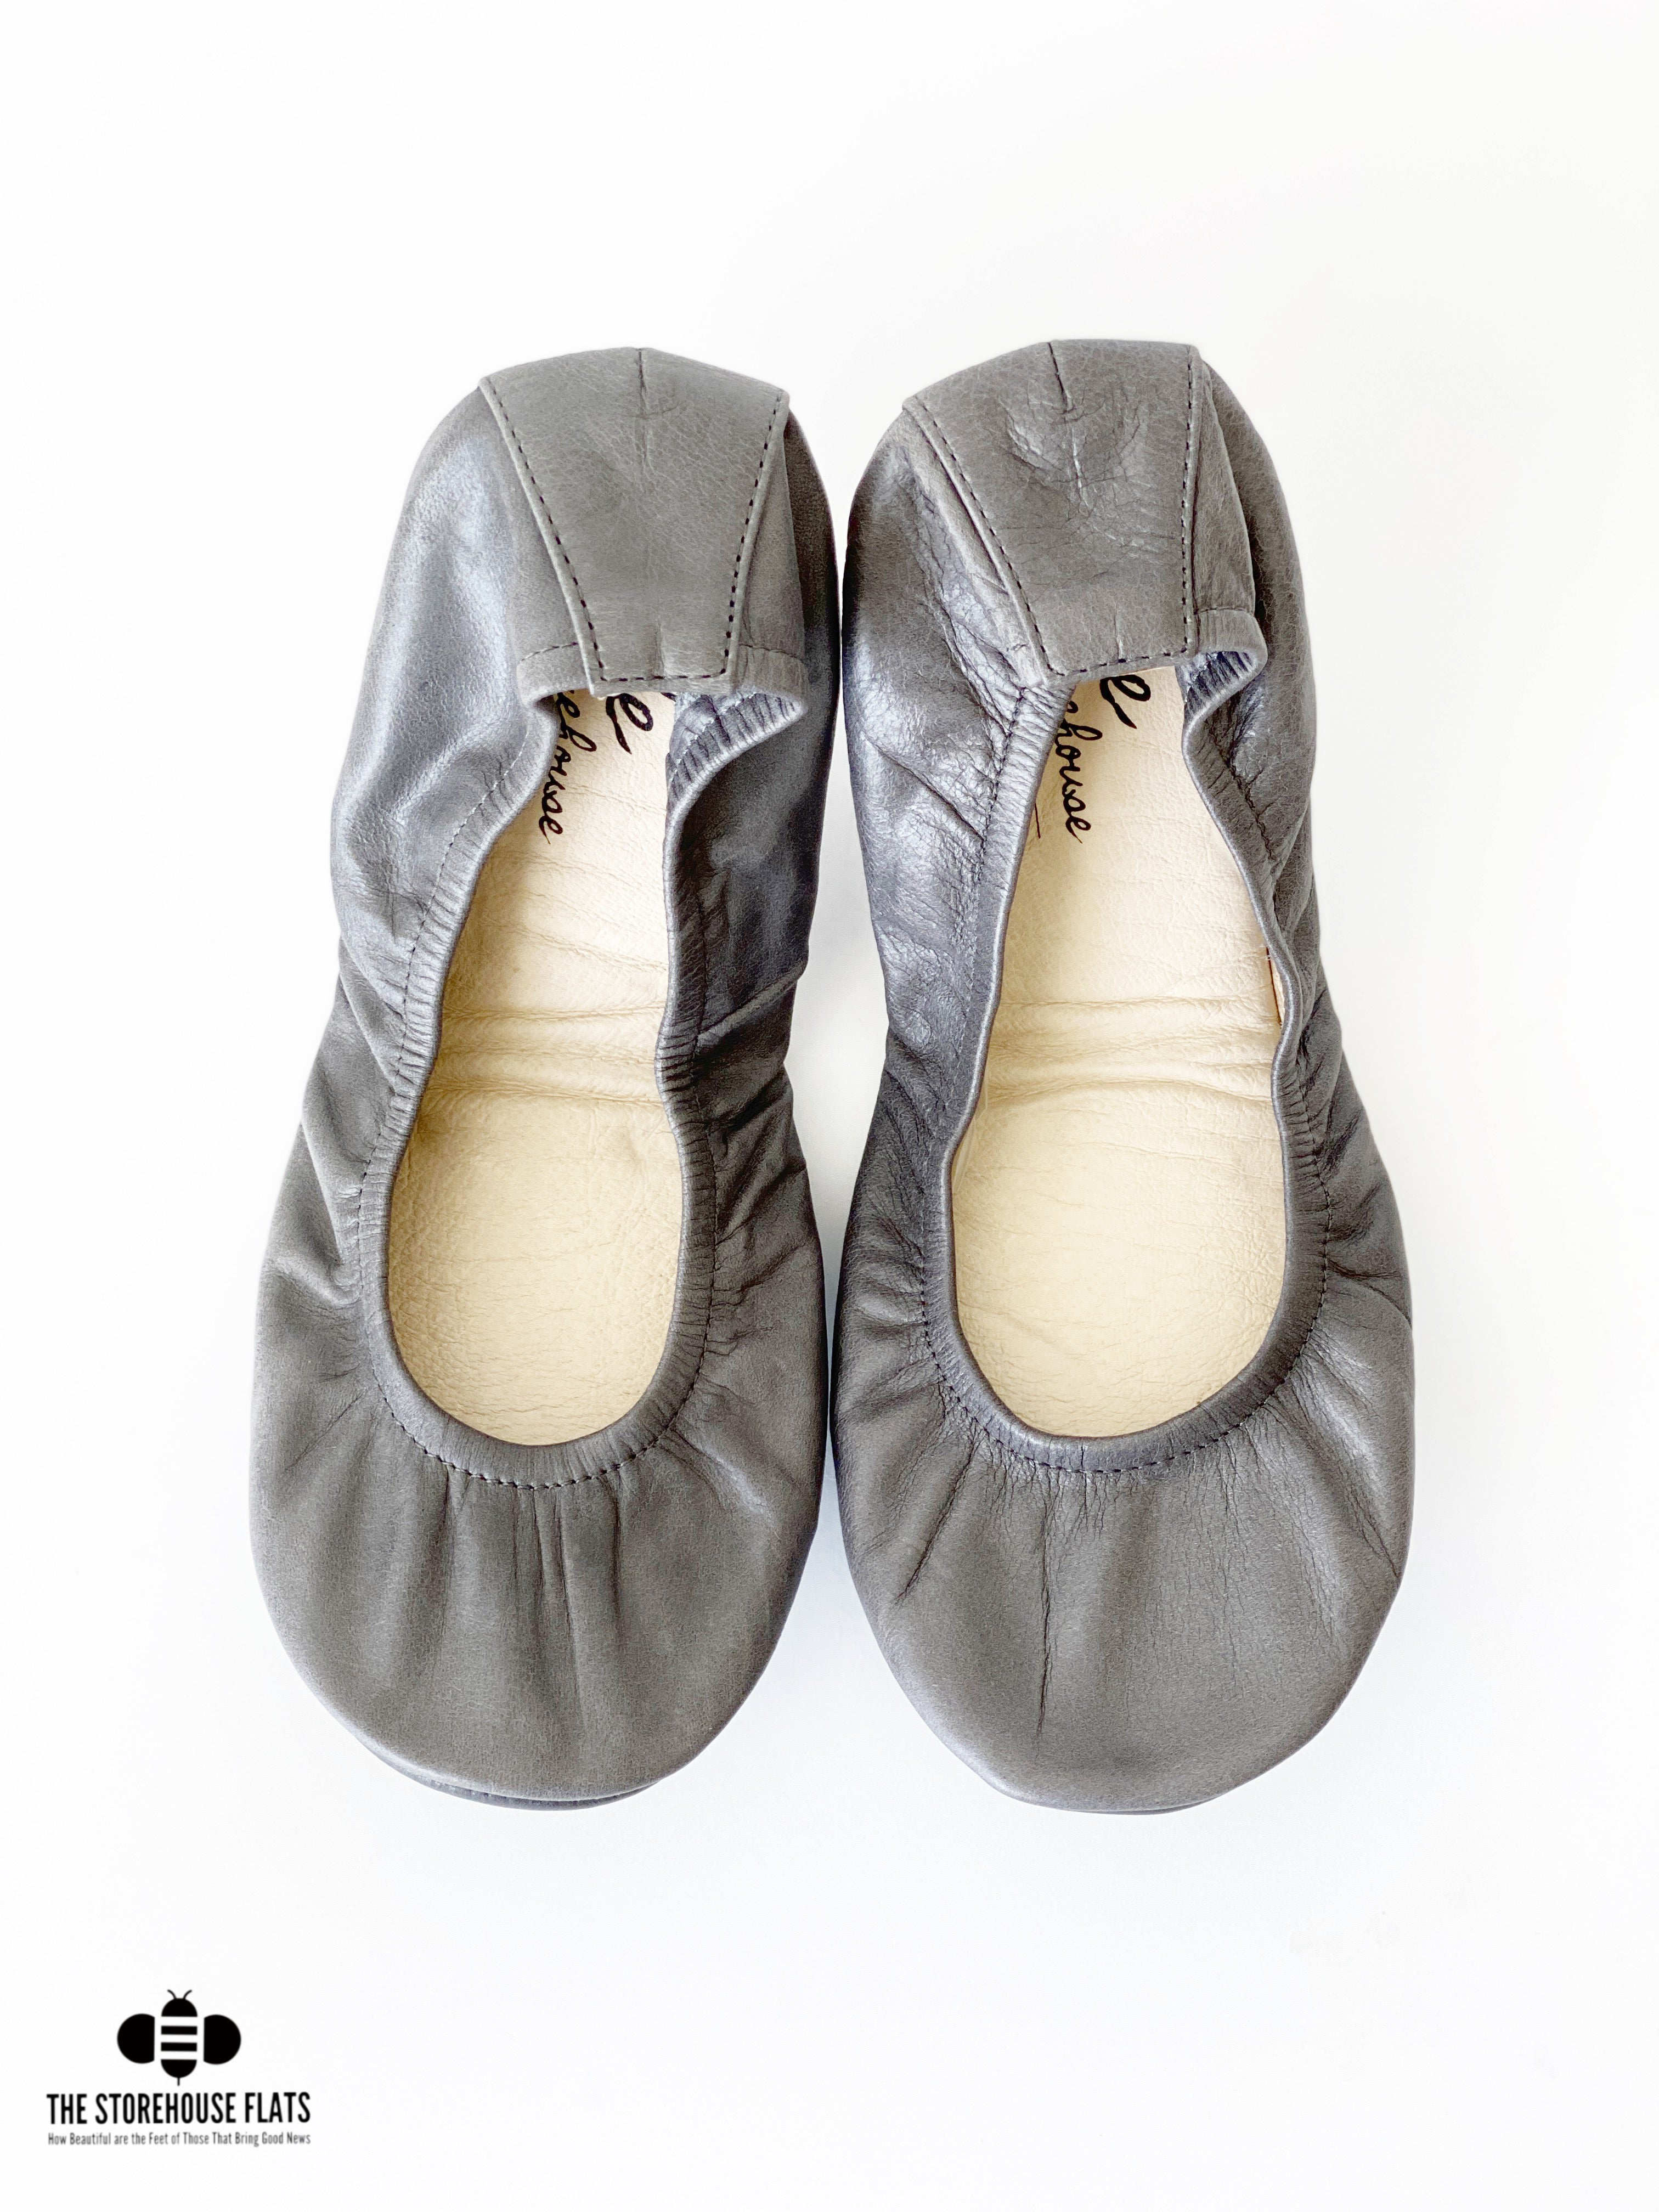 SLATE GRAY OIL TANNED | IN STOCK - The Storehouse Flats